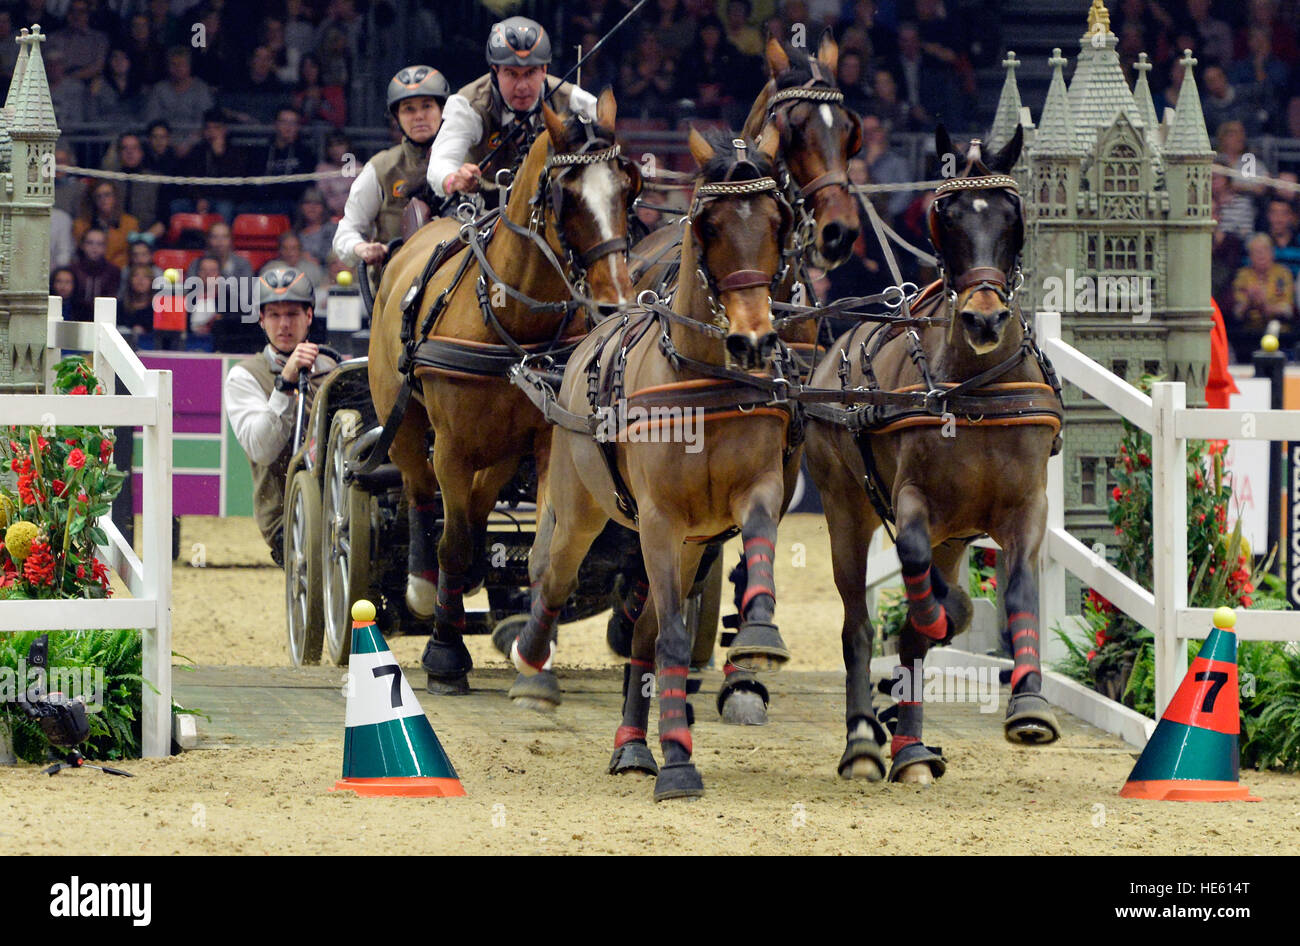 London, UK. 17. Dezember 2016. Olympia London International Horse Show in Grand Hall Olympia London UK. Die FEI Stockfoto